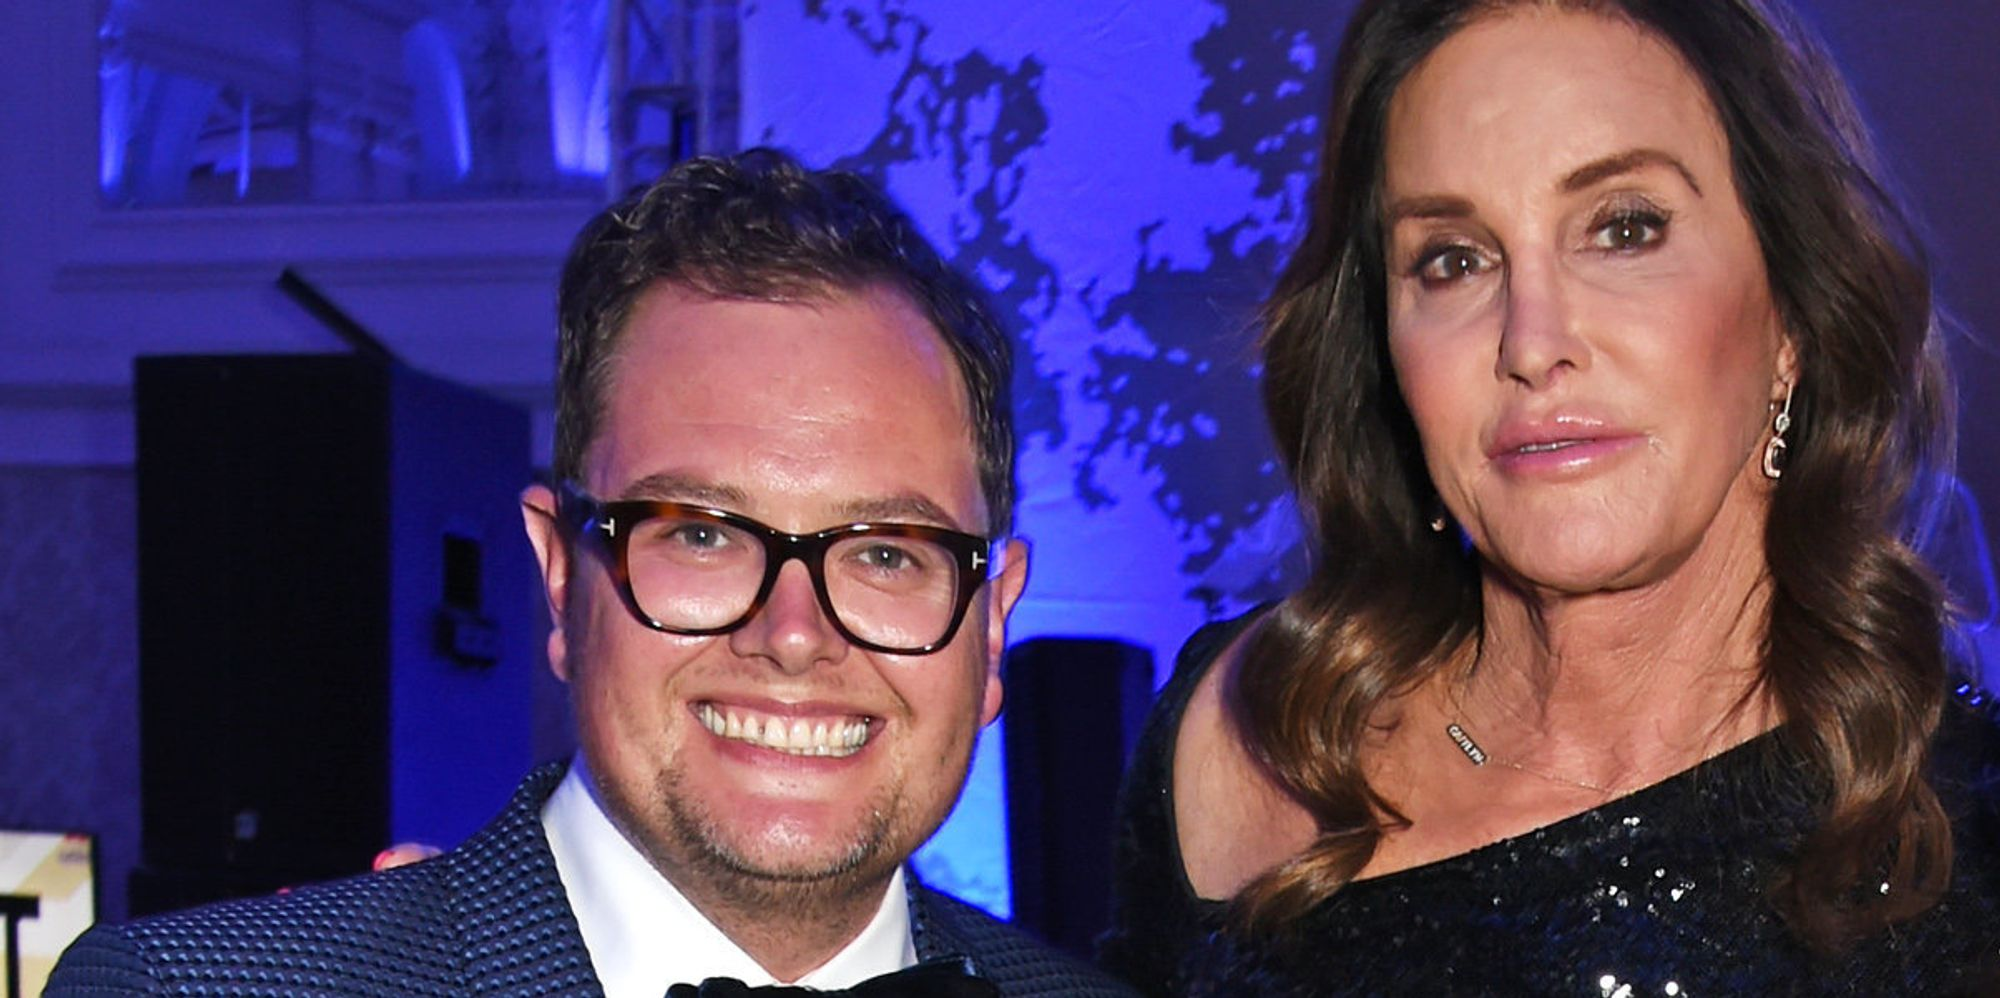 Alan Carr Sickened By Transphobic Attack On Caitlyn Jenner At British LGBT Awards